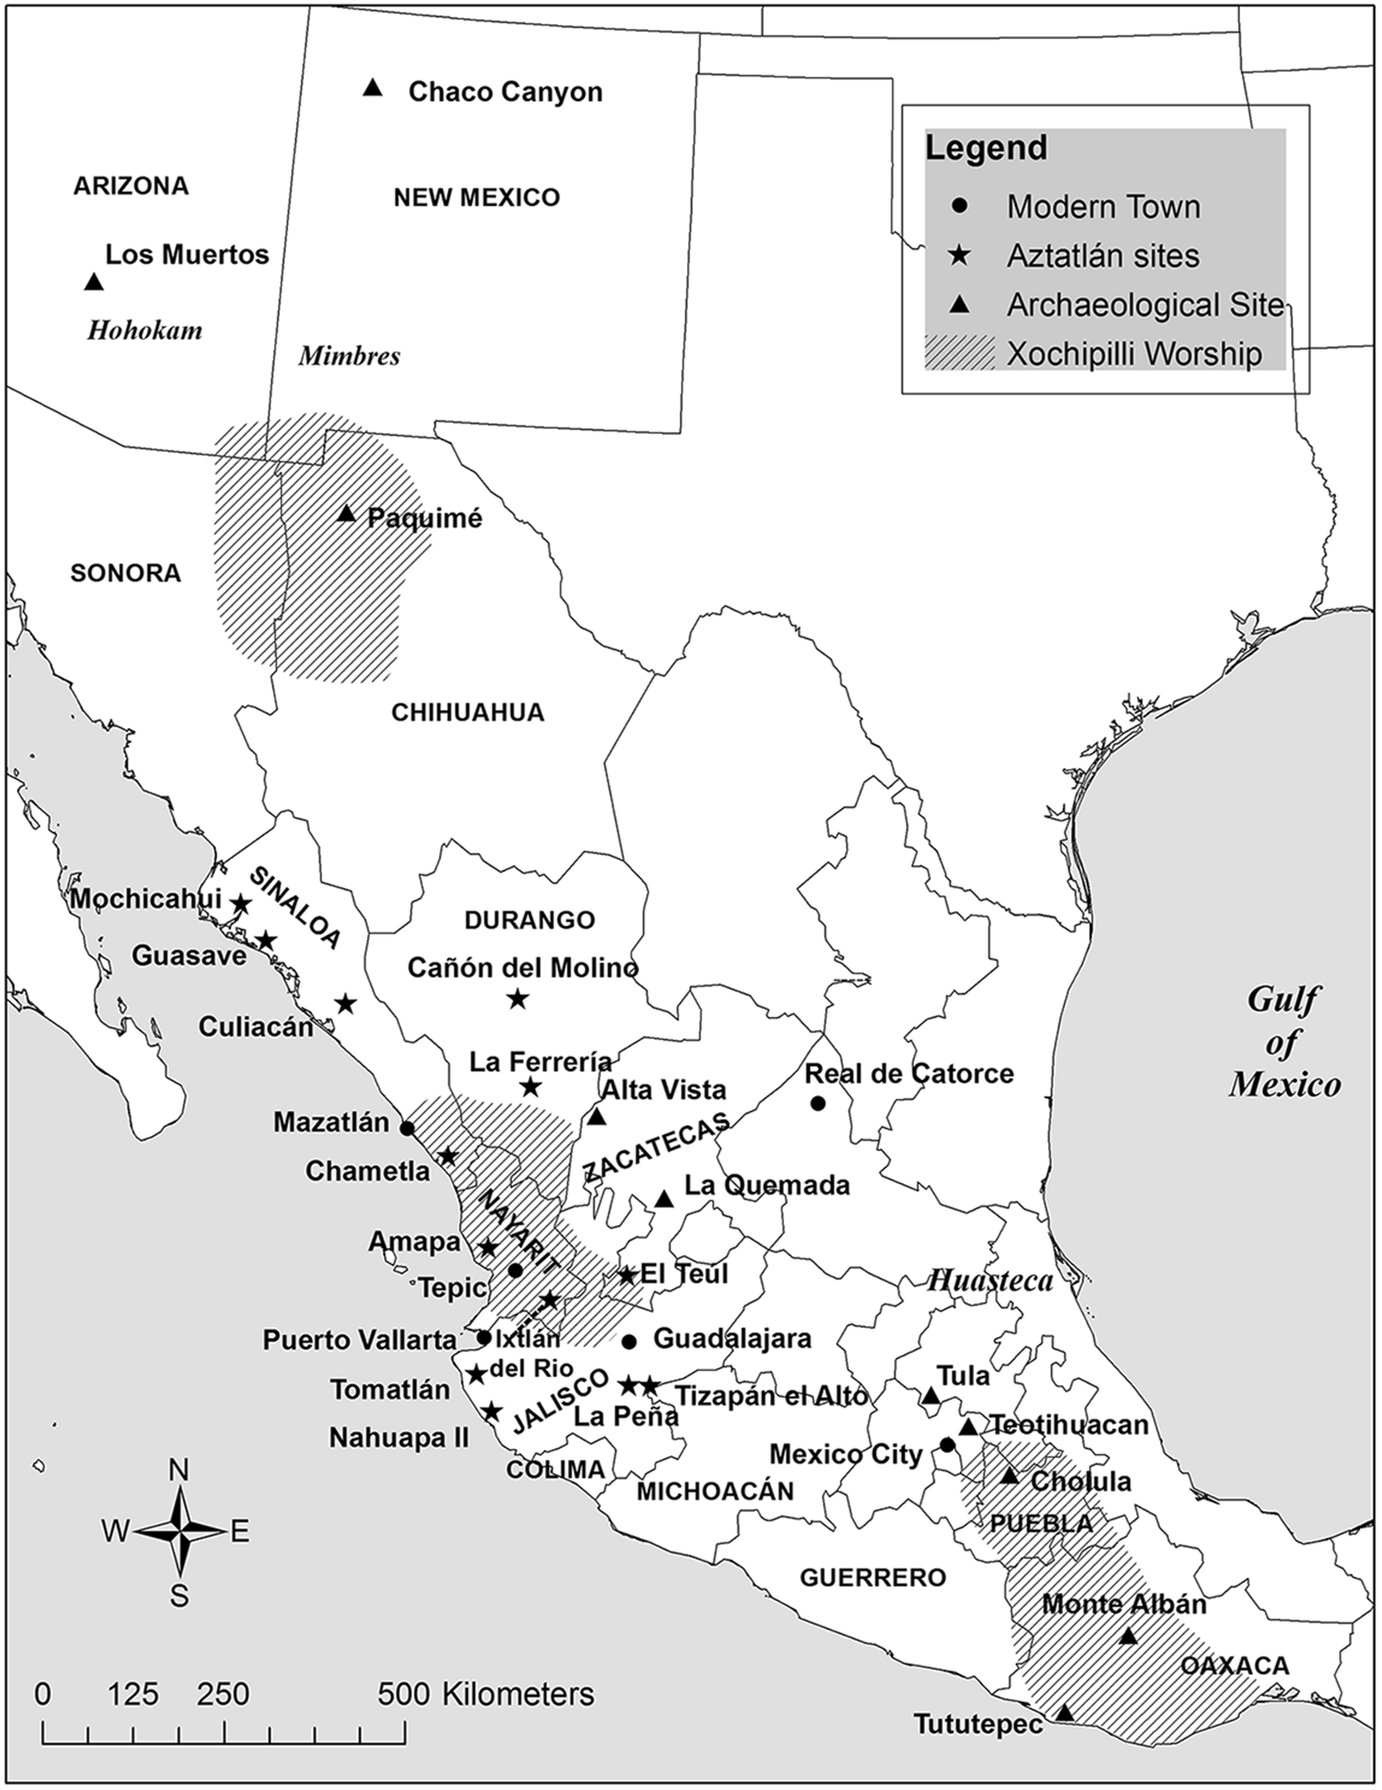 A History of Cacao in West Mexico: Implications for